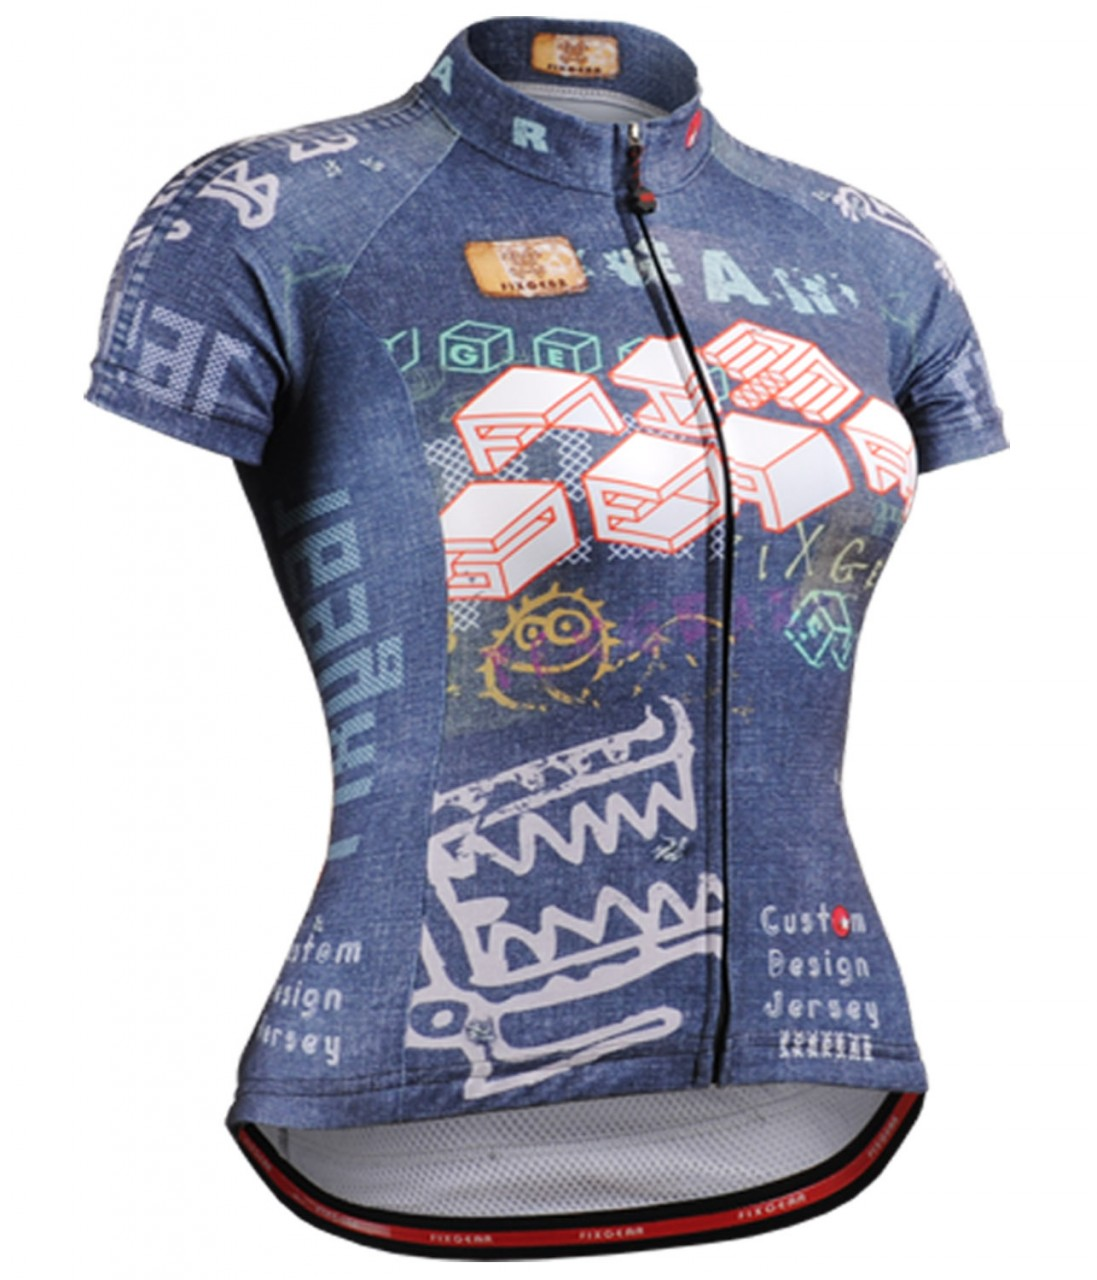 e94c63d5d Fixgear cycling jersey short sleeve color blue for women. size S